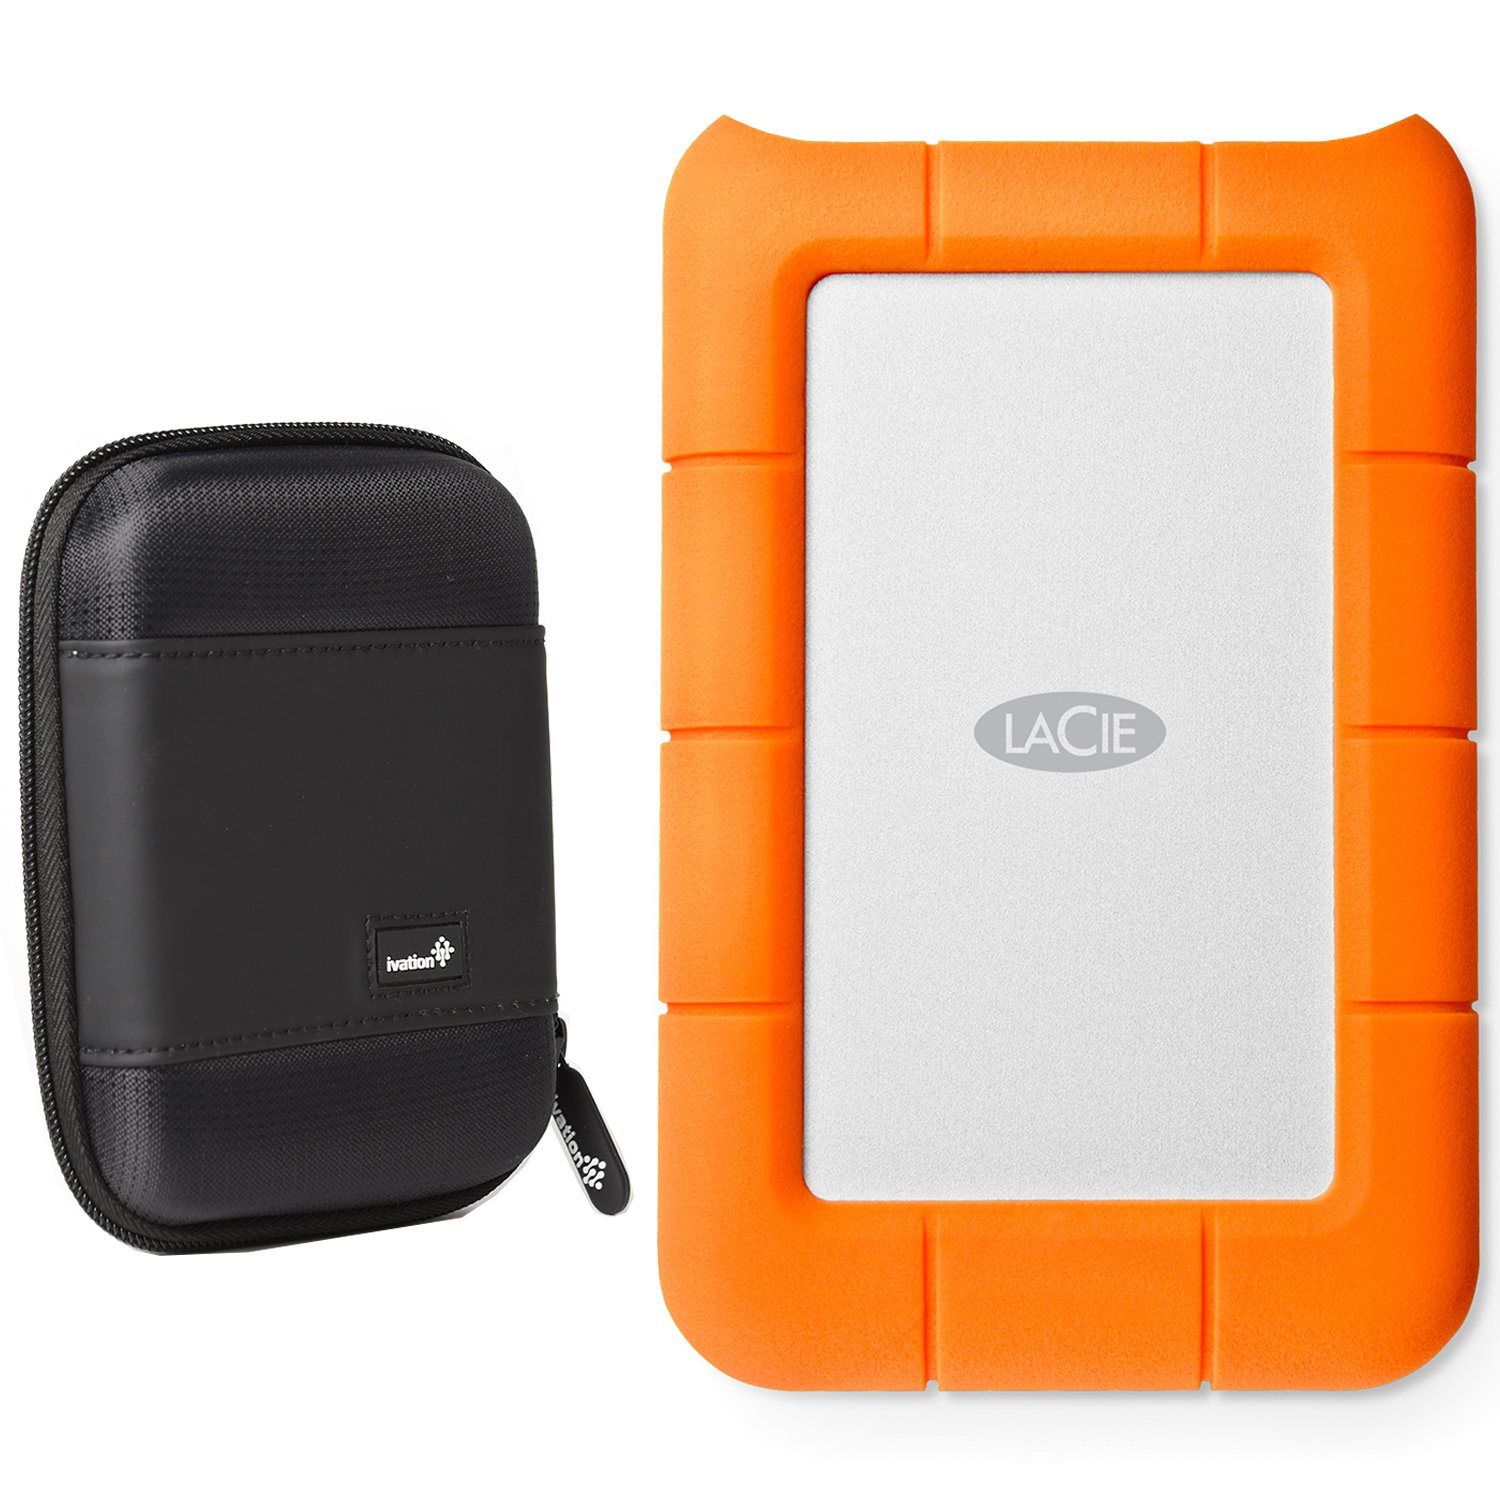 LaCie Rugged Thunderbolt & USB 3.0 2TB 9000489 (LAC9000489) With Ivation Compact Portable Hard Drive Case by Calumet